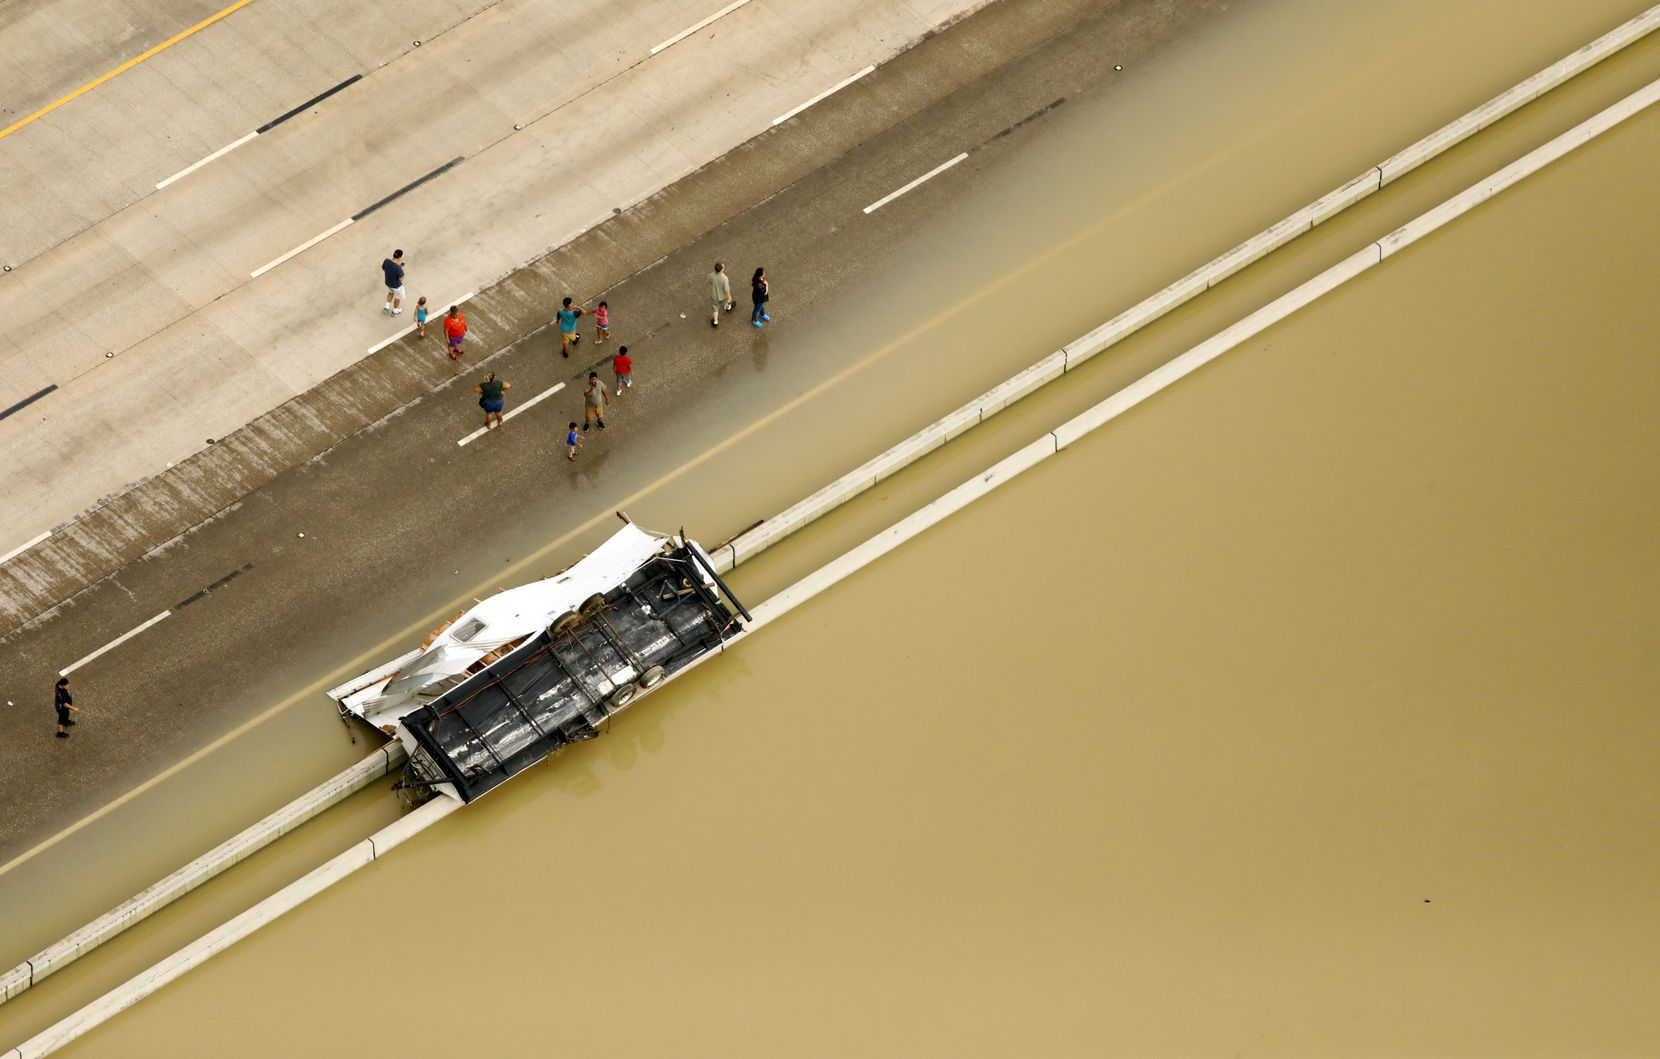 People gather along flooded Interstate 69 to see a recreational vehicle overturned in the rainwater left from Hurricane Harvey in Humble, Texas, Wednesday, August 30, 2017.